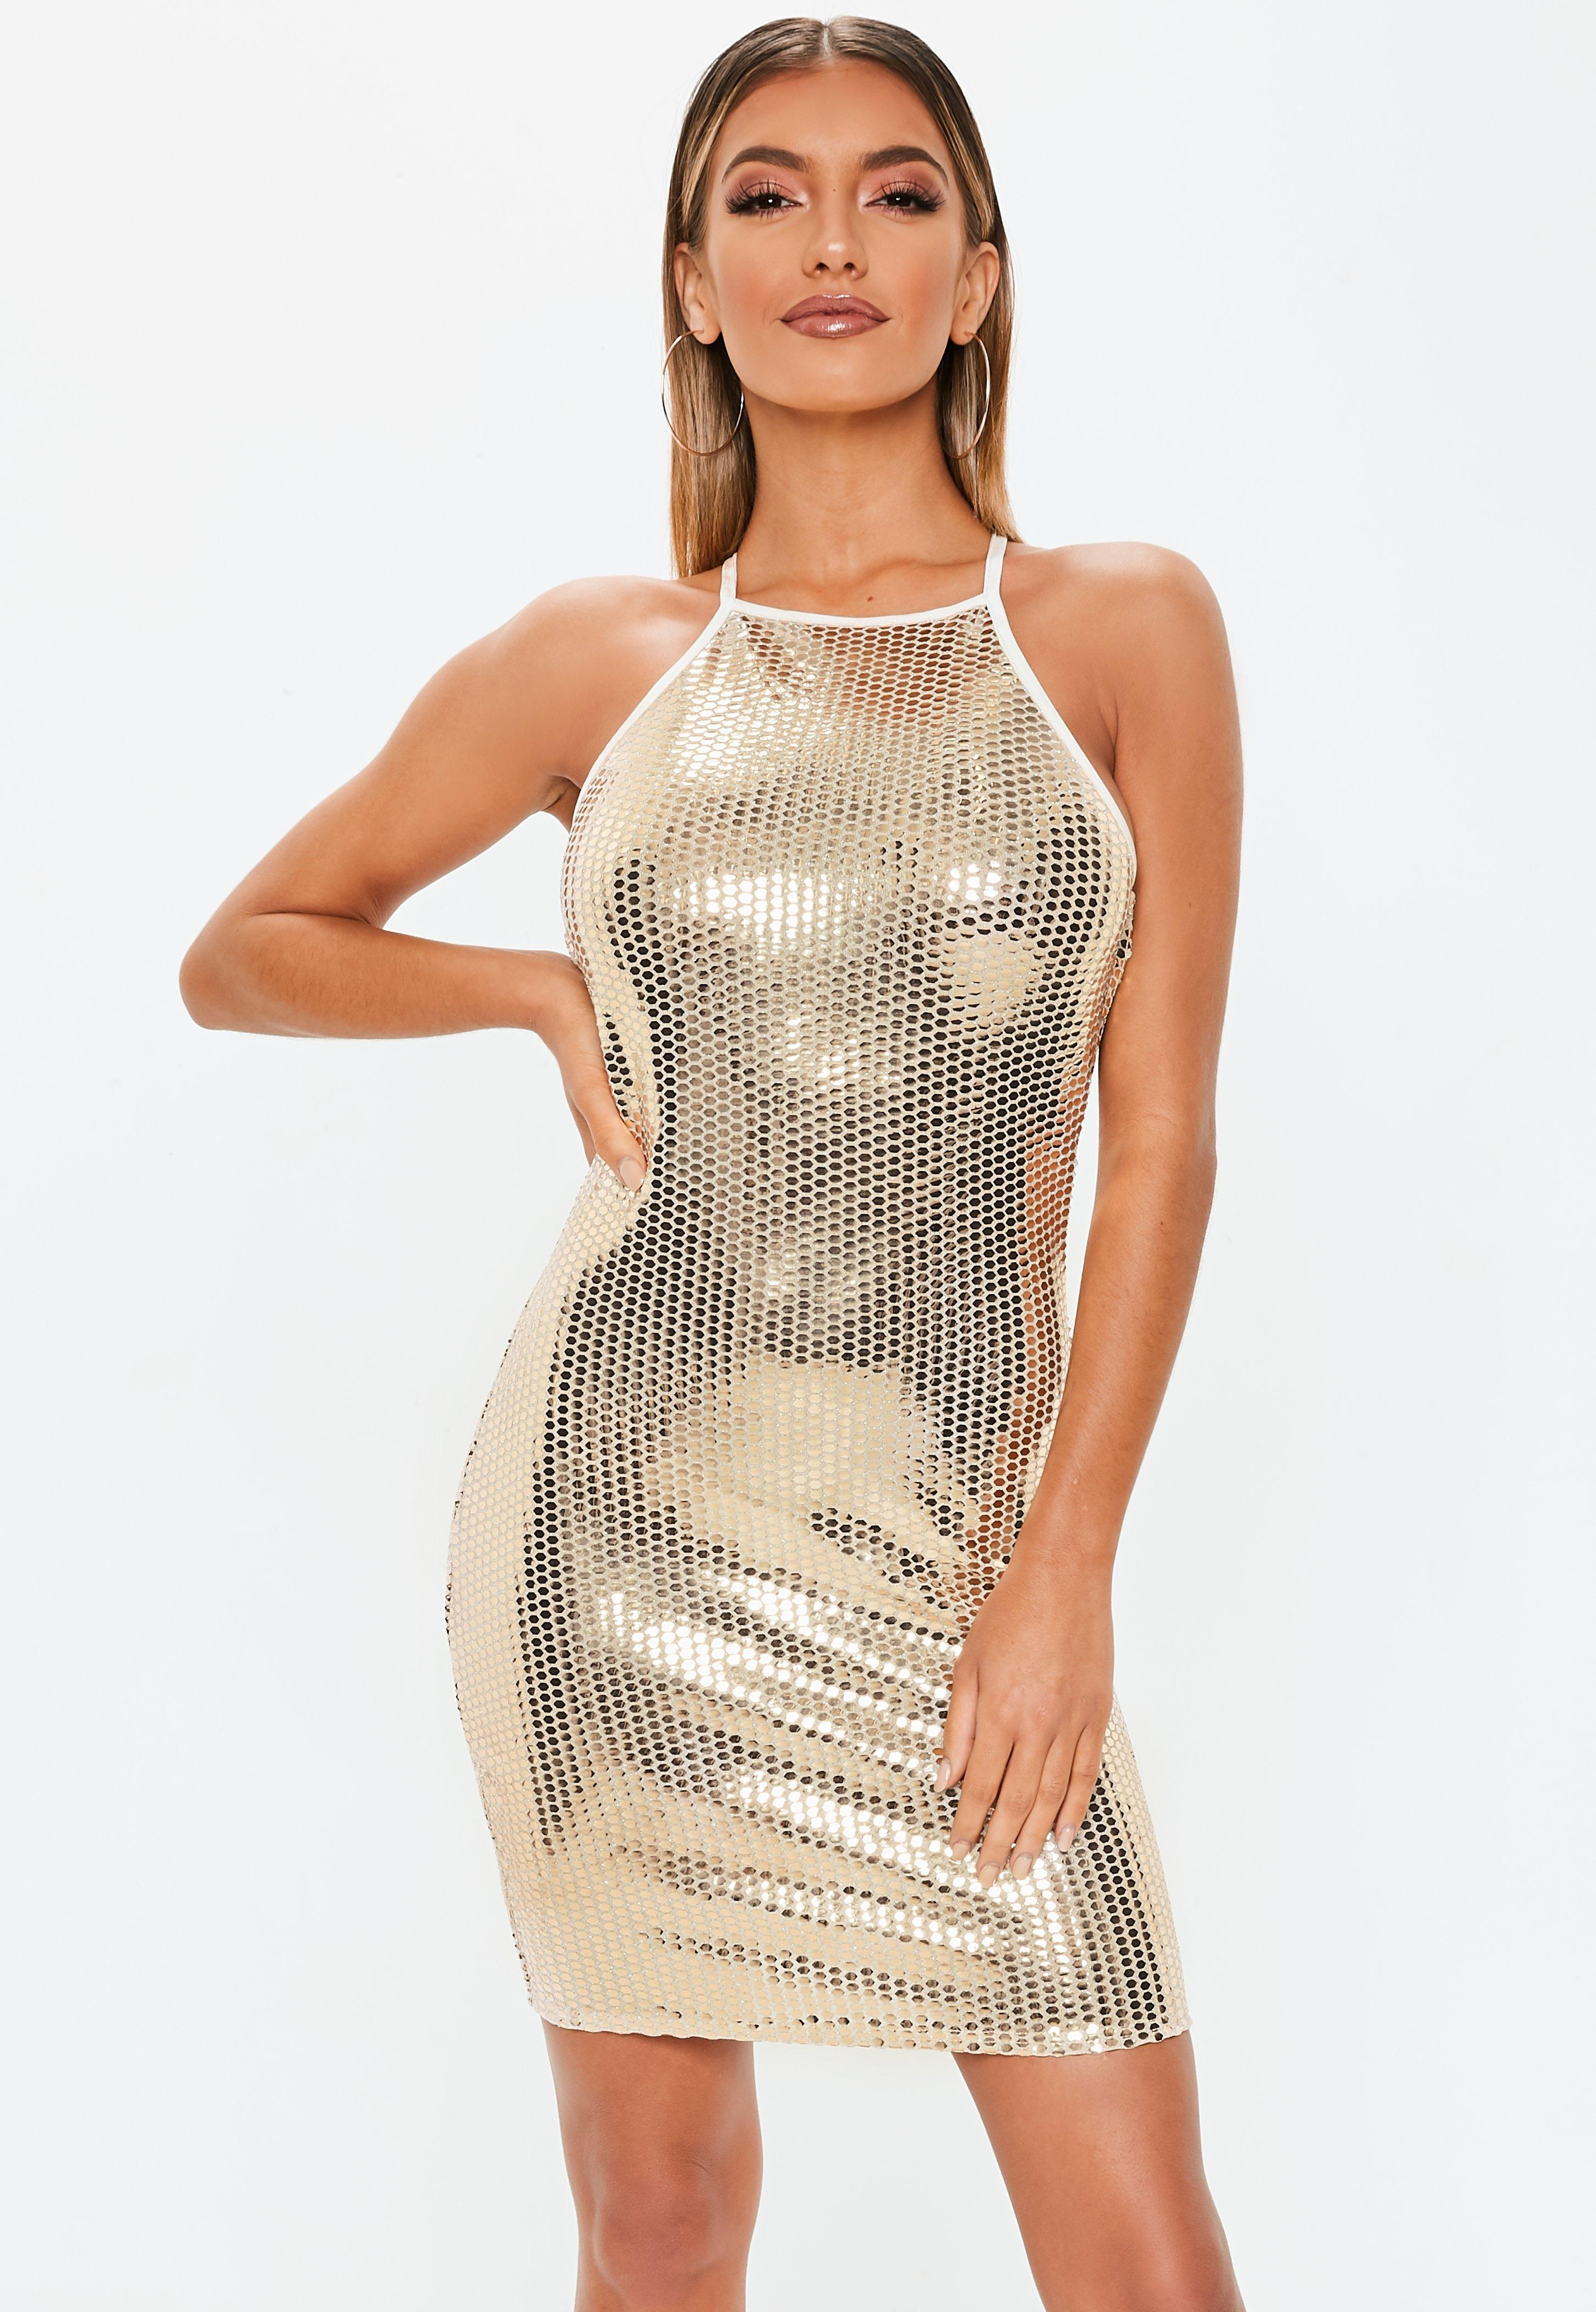 Lyst - Missguided Tall Gold Sequin Bodycon Mini Dress in Metallic a2098fb4035